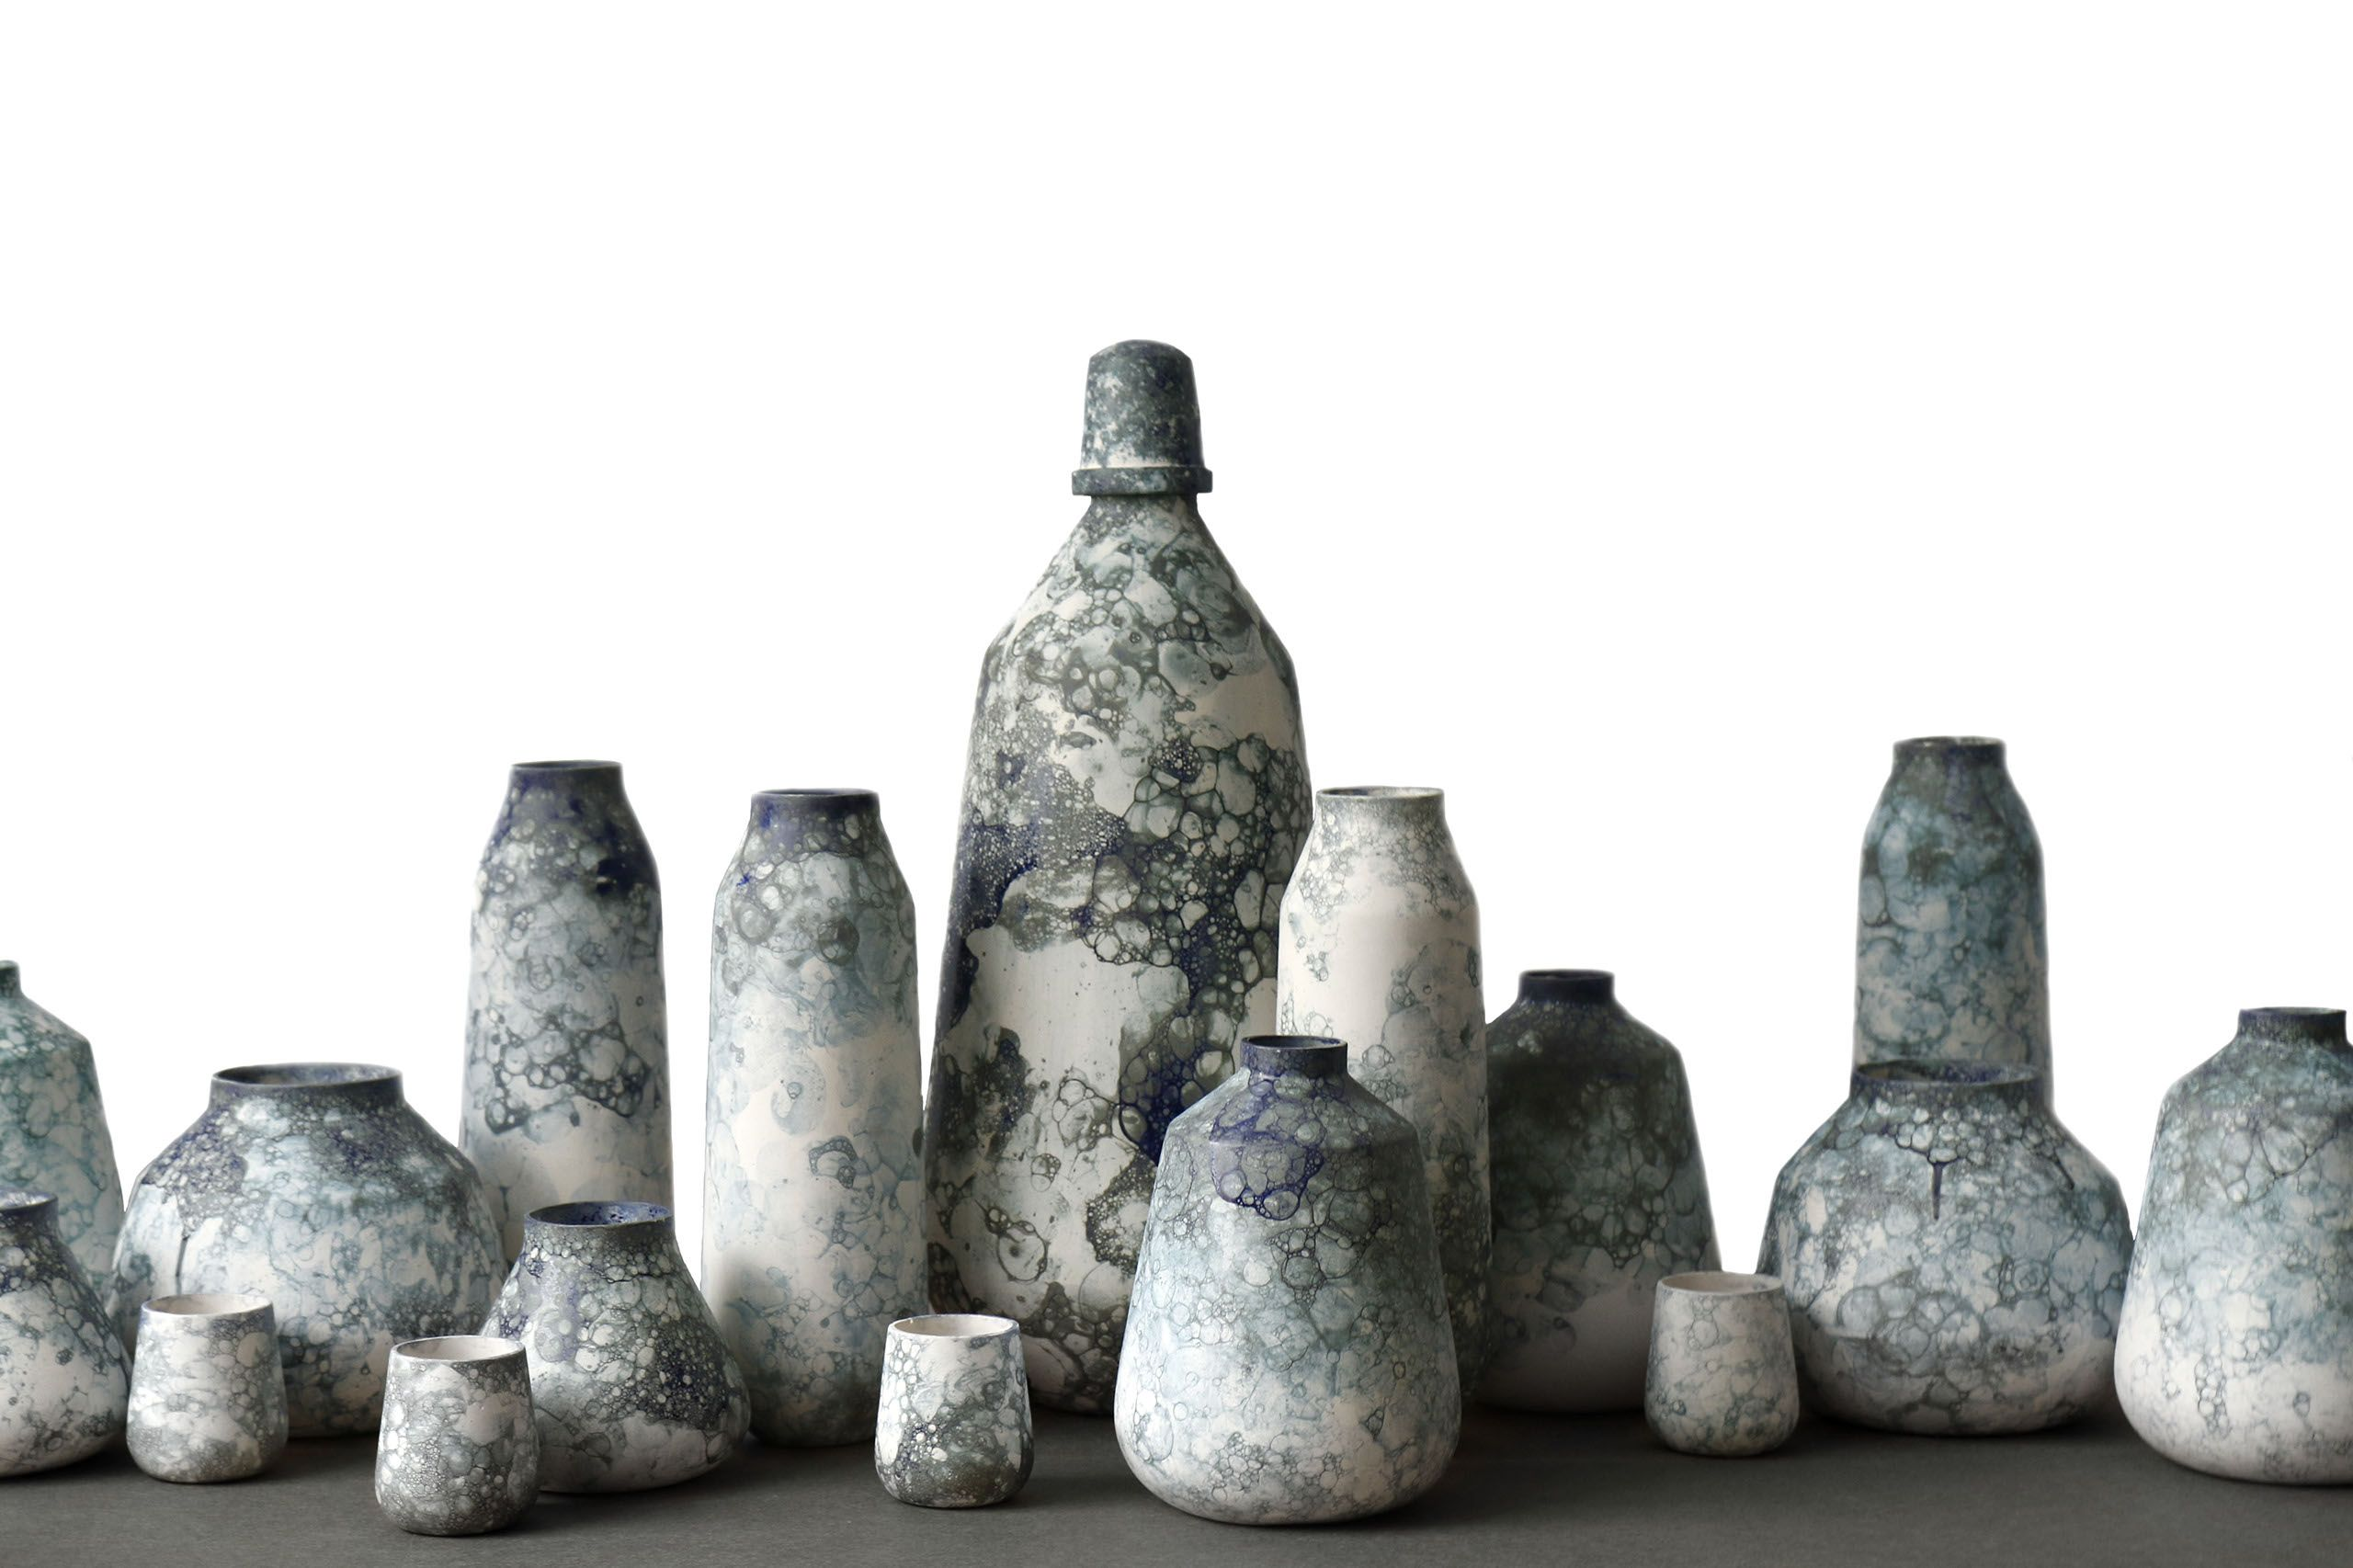 STUDIO ODDNESS BUBBLEGRAPHY is a series of ceramic vases finished with a soap glaze. By blowing air into the glaze, and in doing so creating bubbles in which the vases are dipped, a mesmerizing play on the exterior of the vase is created.